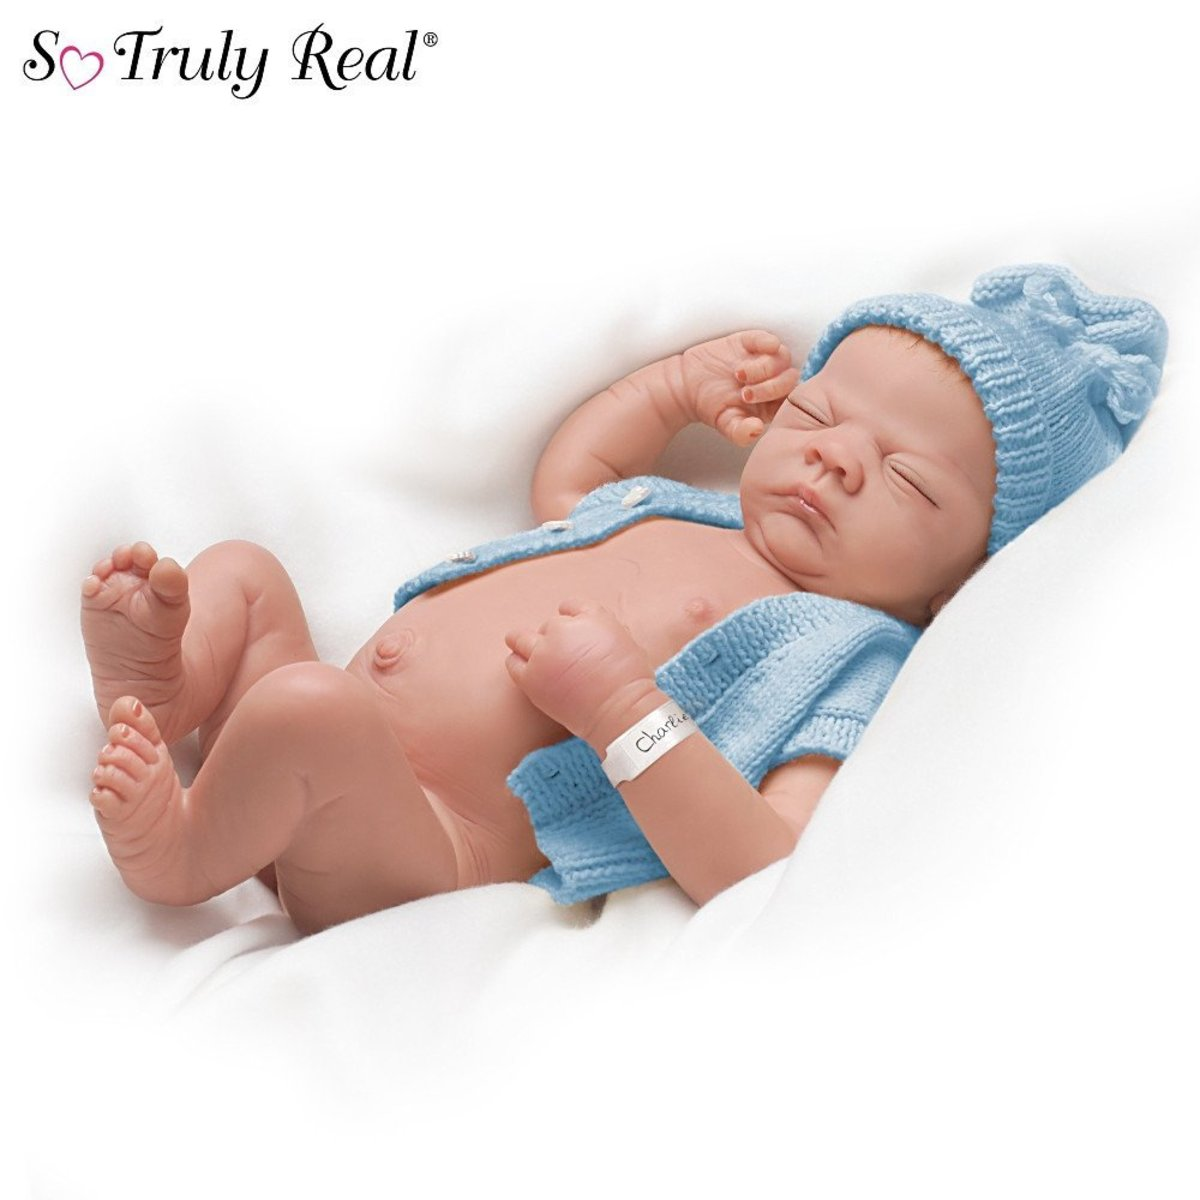 Reborn Dolls and Lifelike Baby Dolls